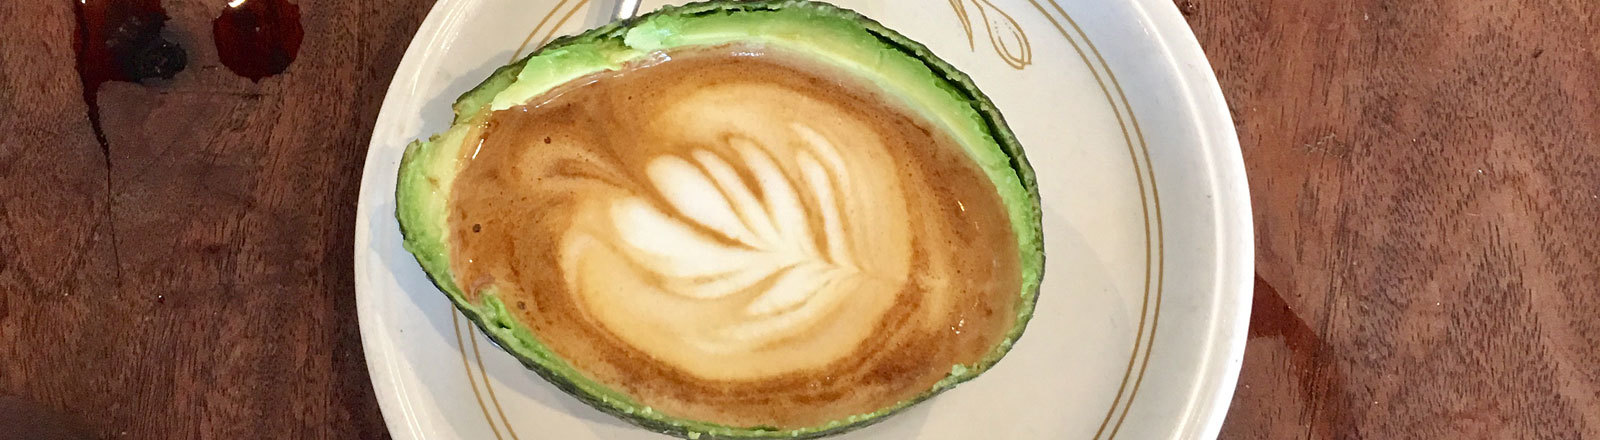 Kaffee in Avocado